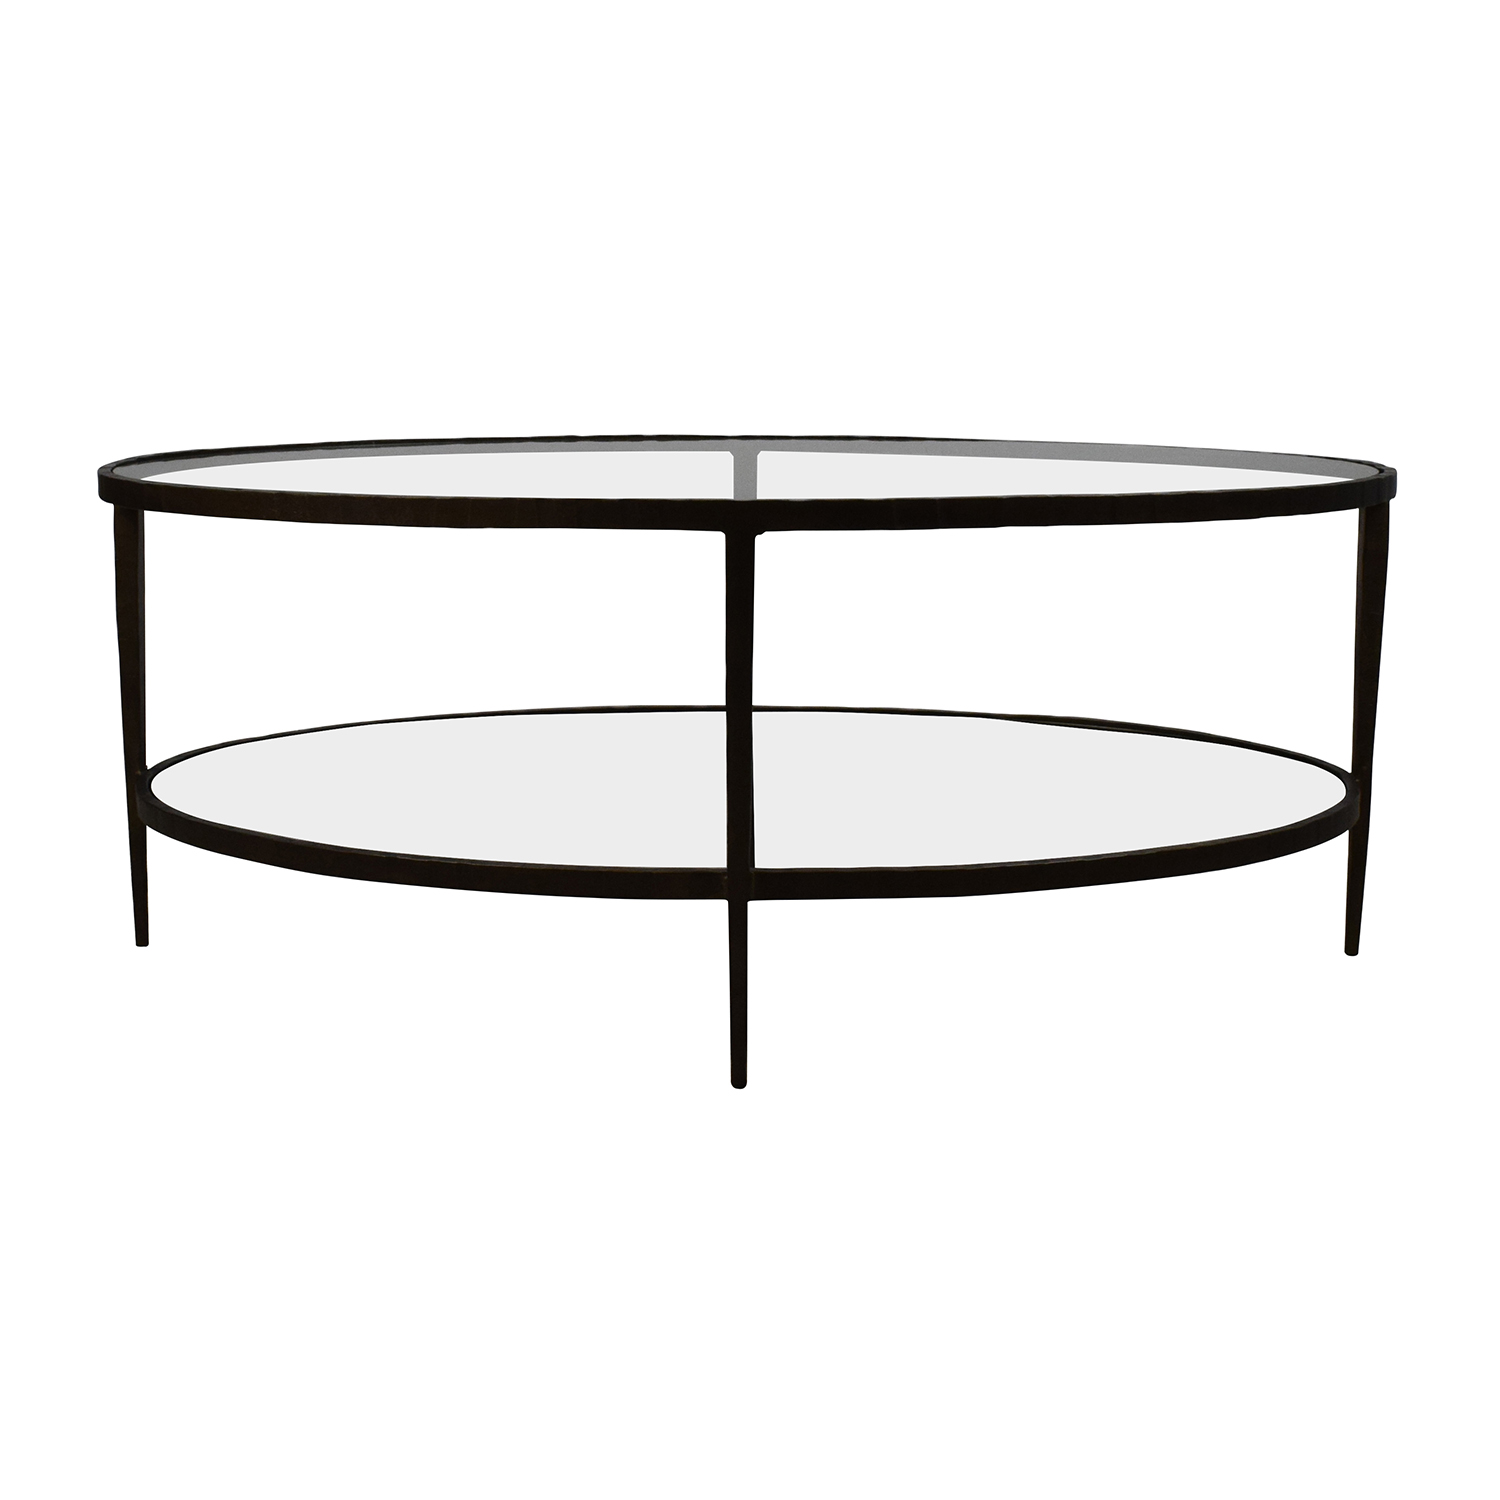 Crate & Barrel Clairmont Glass Coffee Table / Coffee Tables